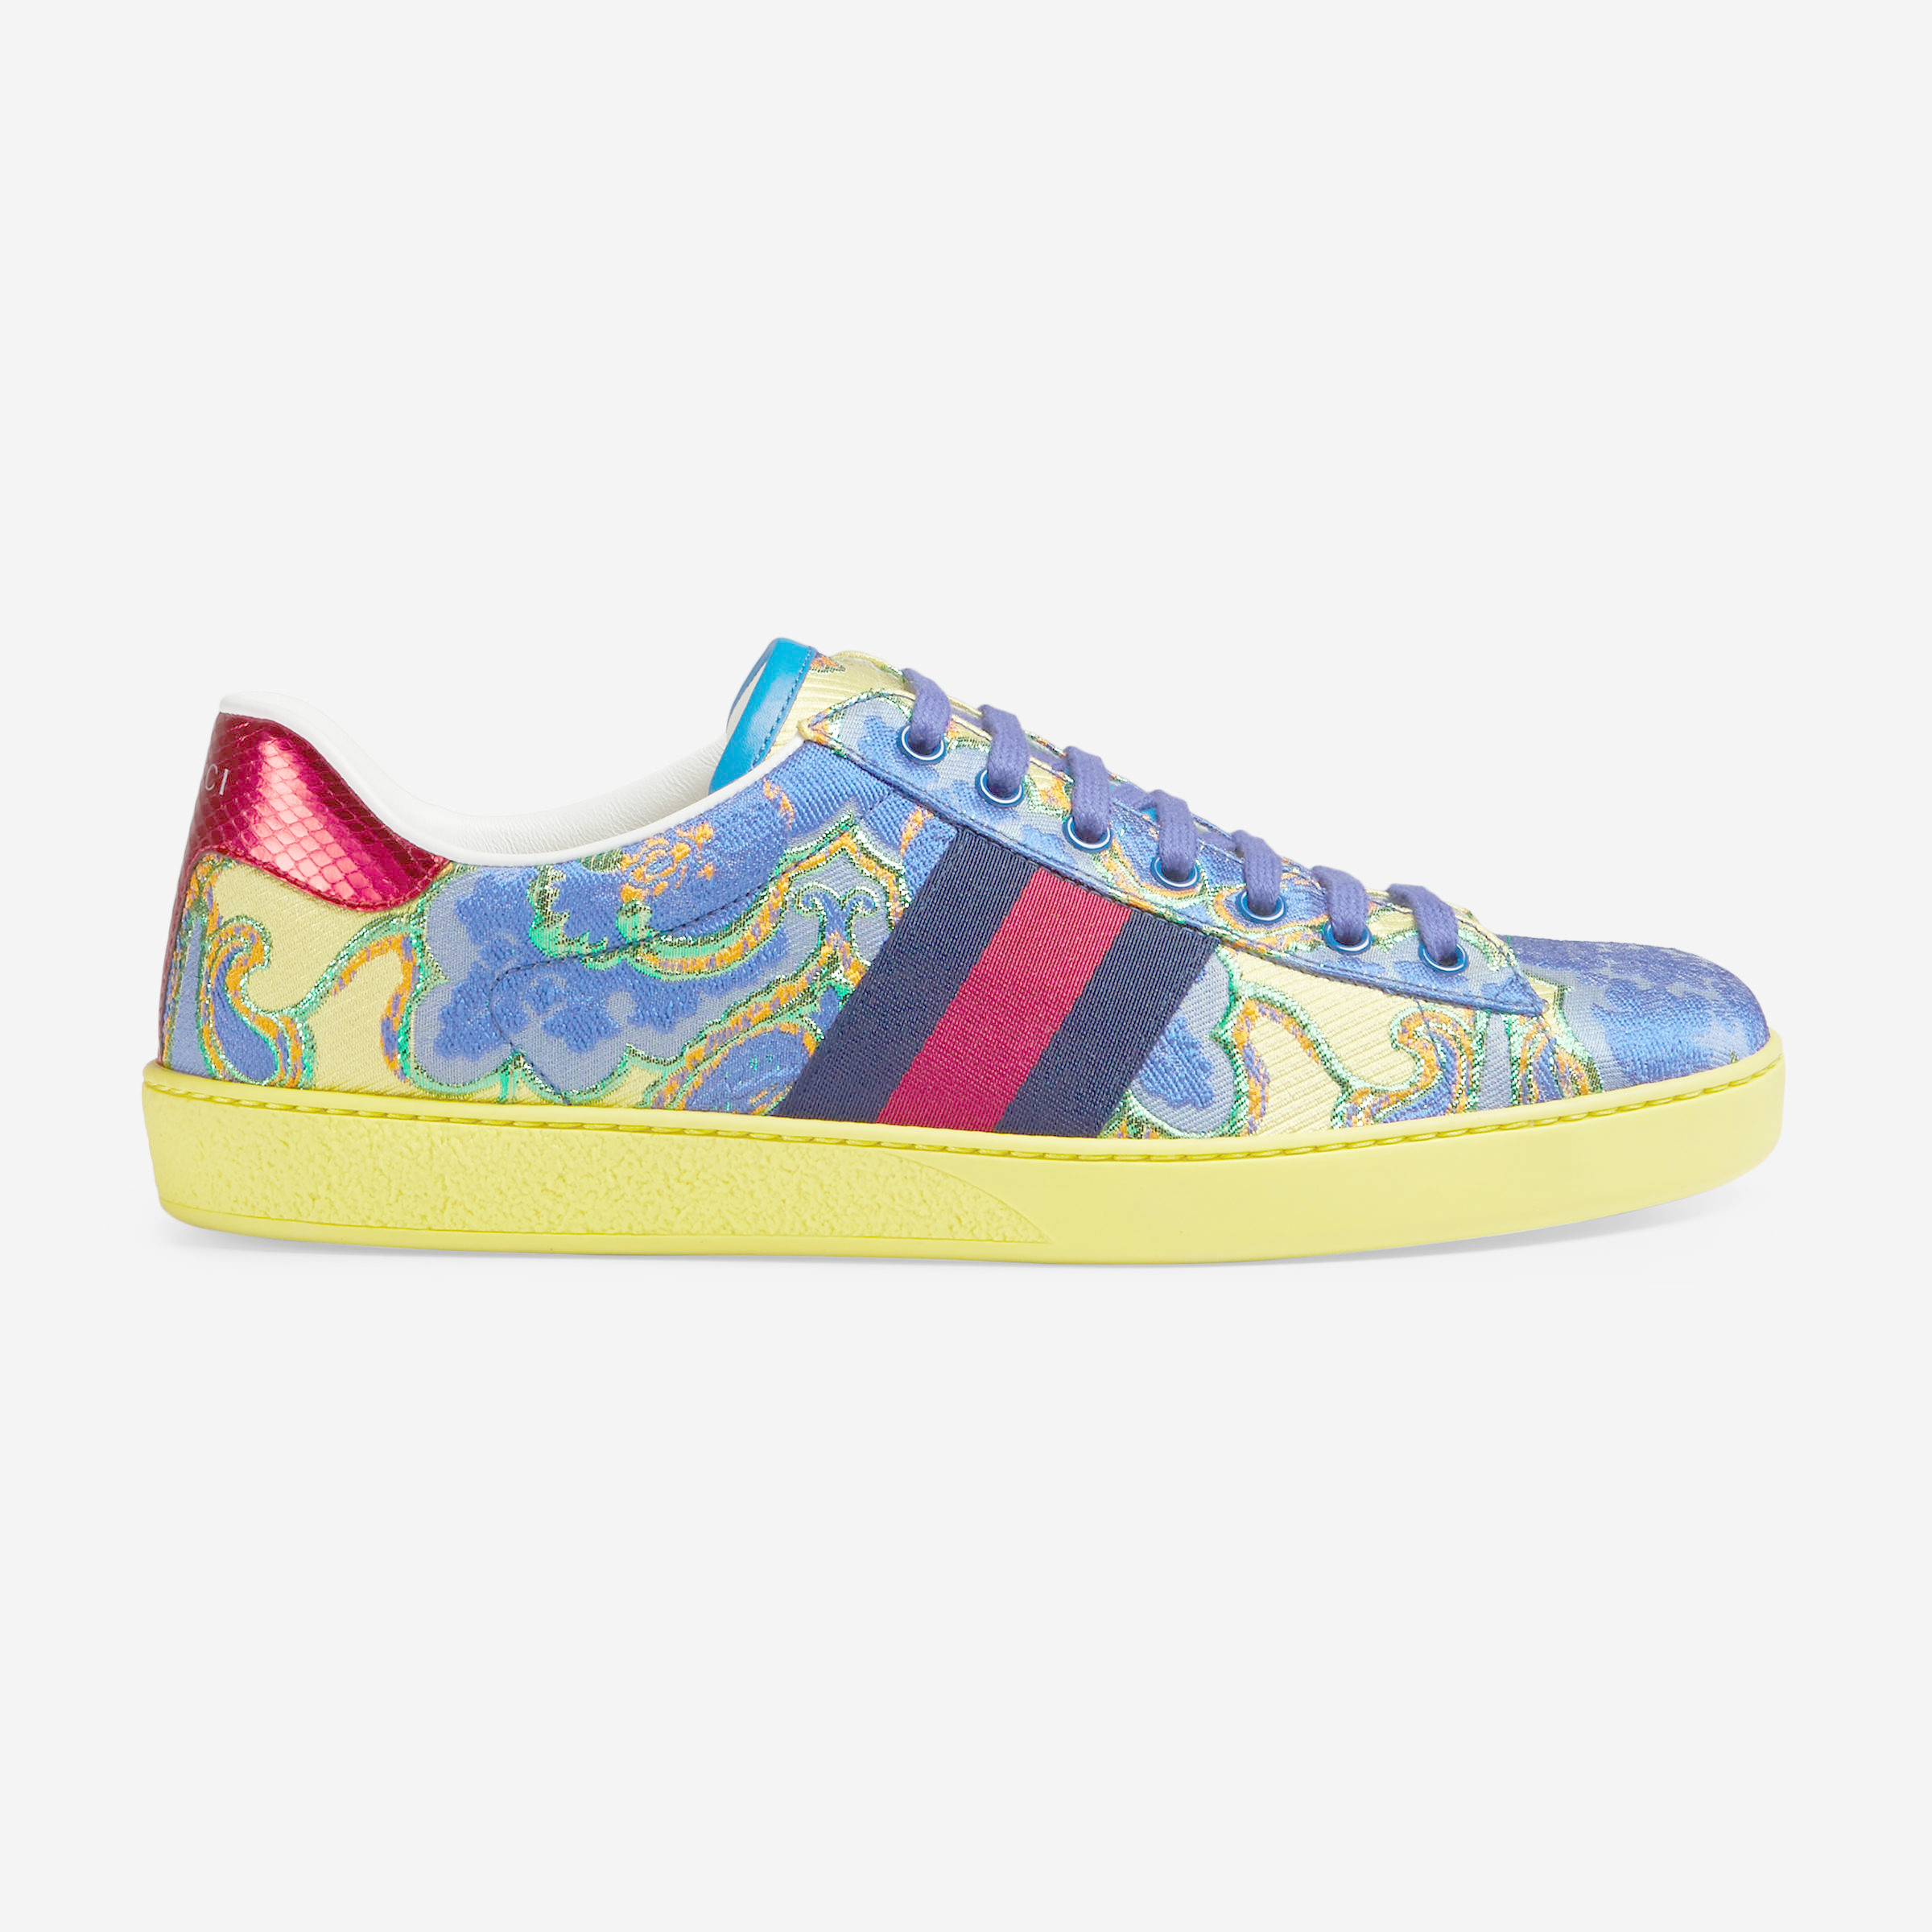 0646542011f Lyst - Gucci Ace Floral Jacquard Low-top Sneaker for Men